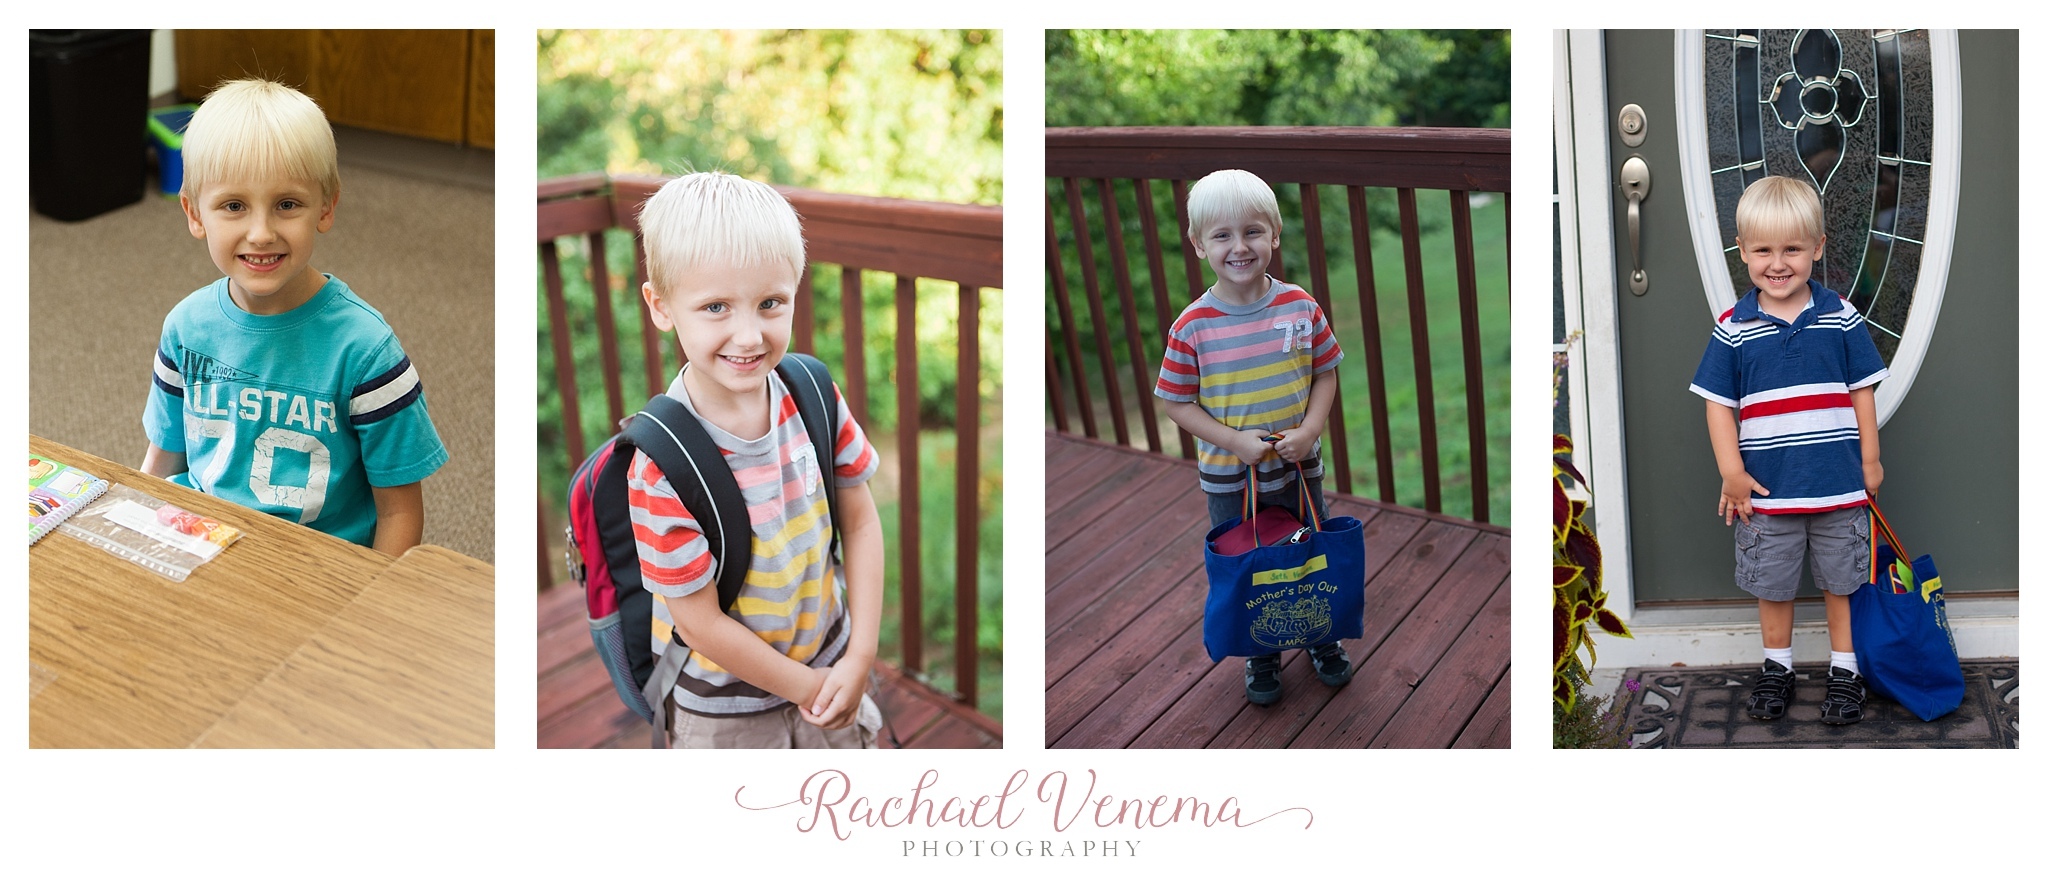 9-Tips-First-Day-of-School-Photos-3.jpg